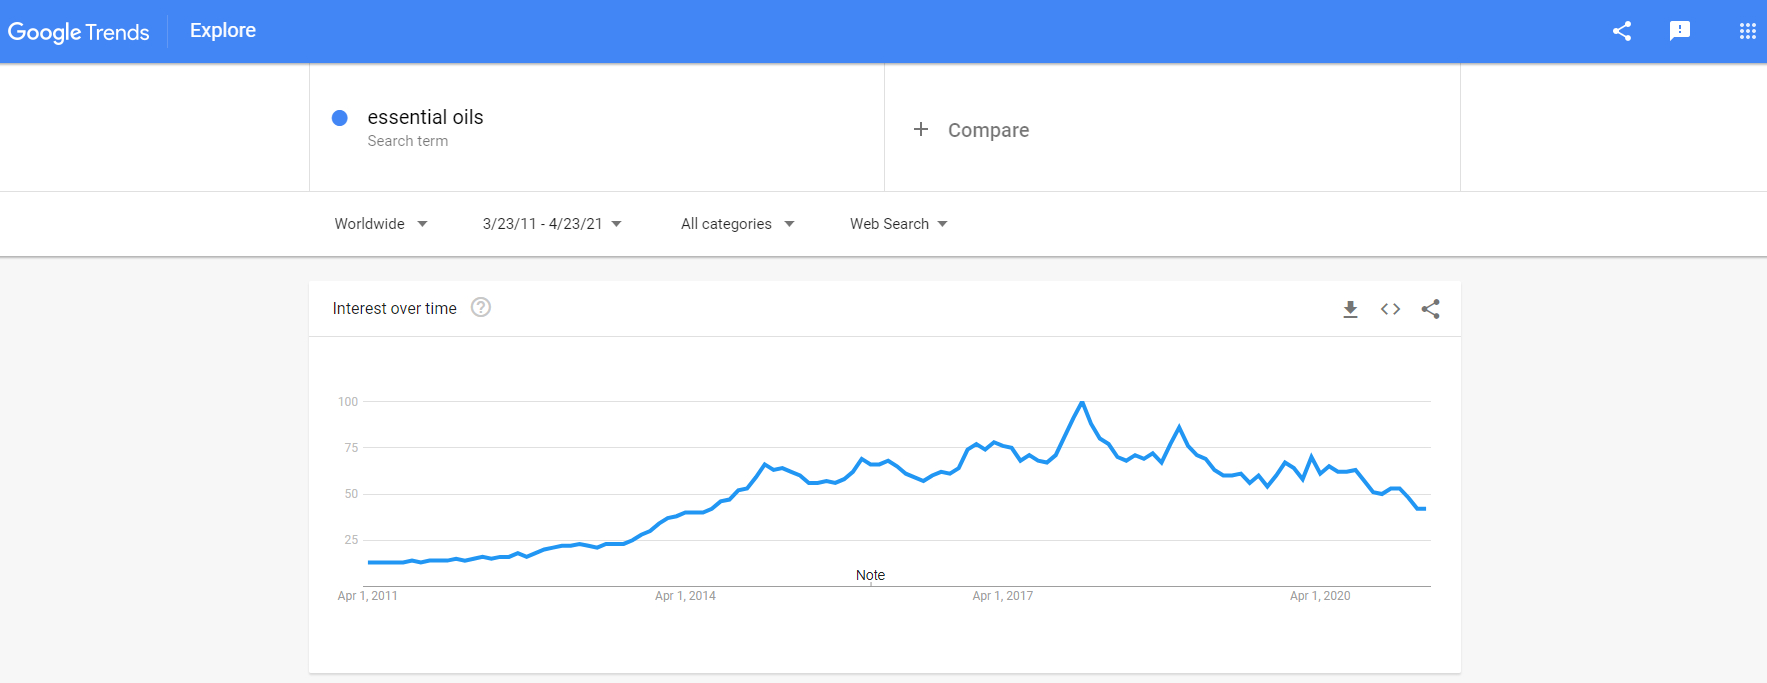 Google Trends results for 'essential oils